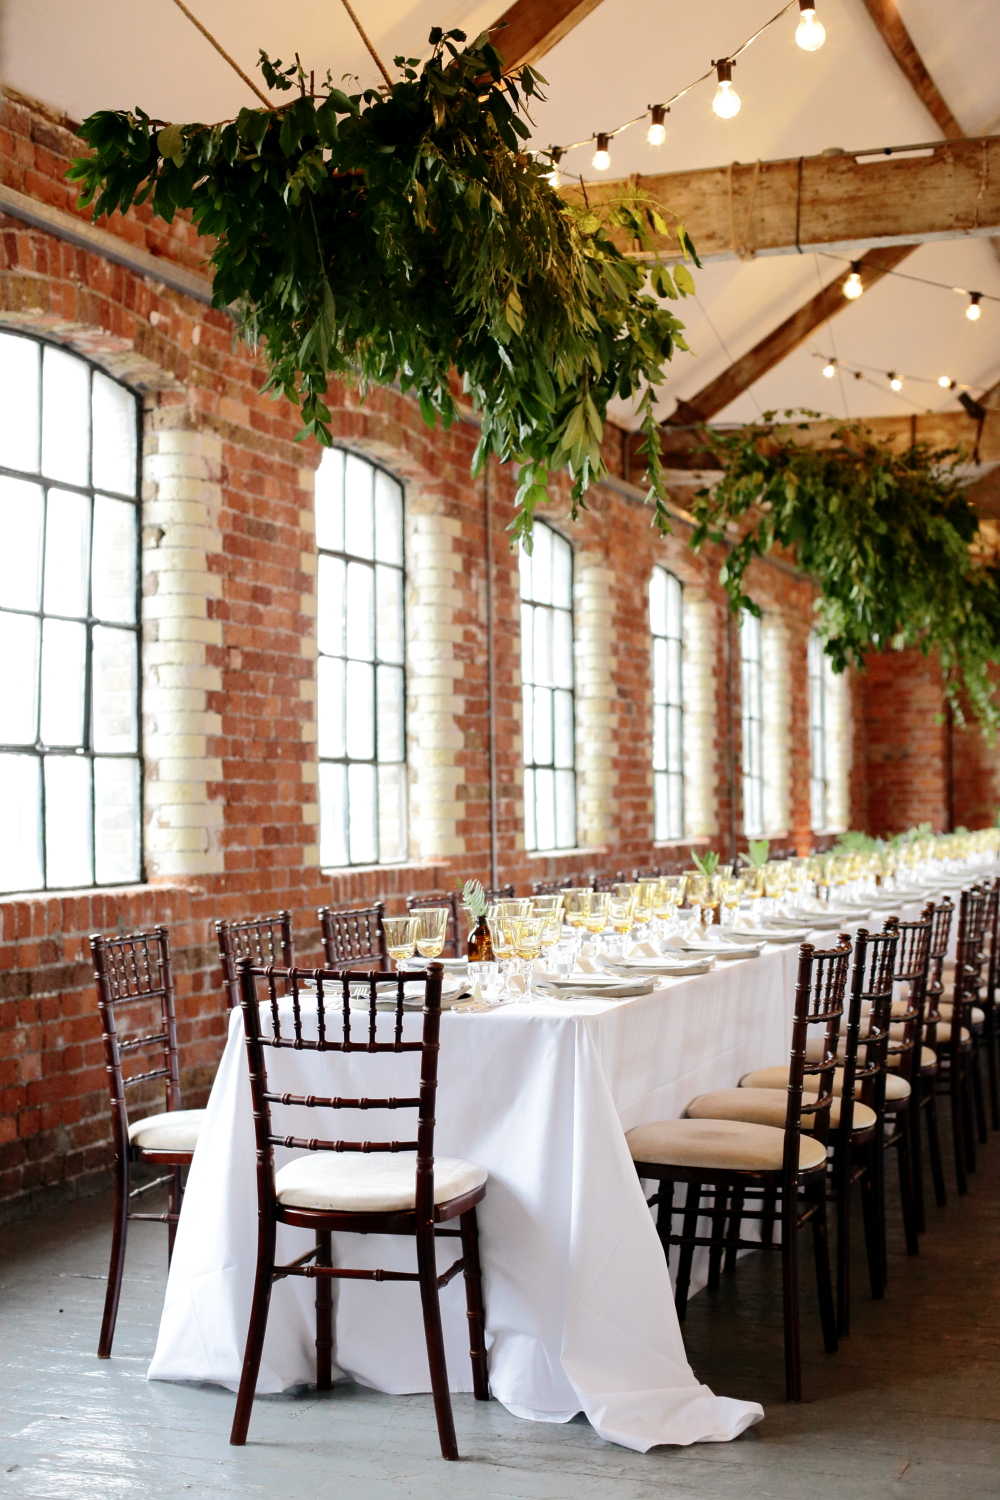 Elegant Loft Wedding In The City With Contemporary Styling